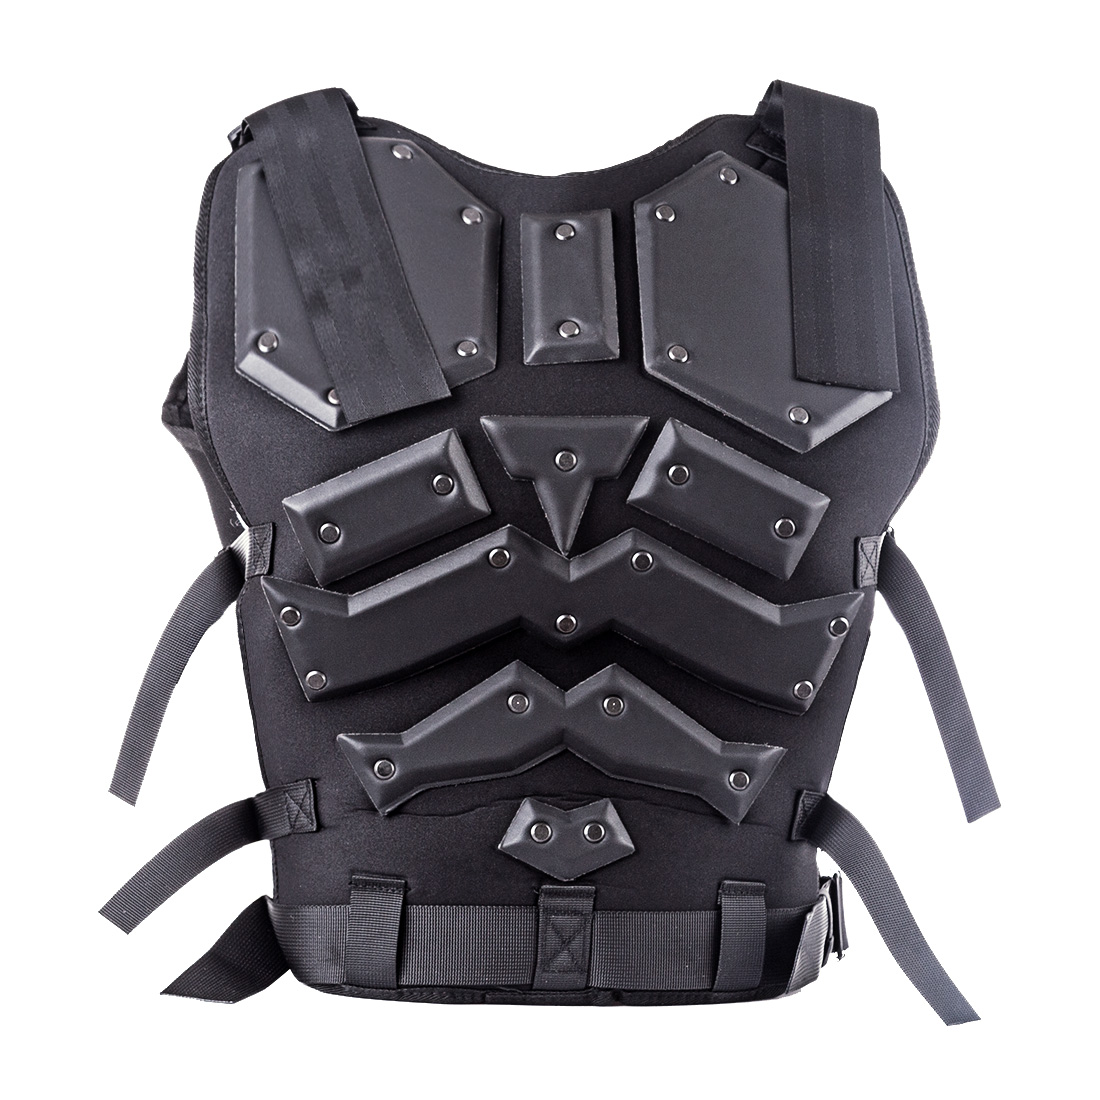 WST Kong Kim Military Tactical Vest 600D Nylon Airsoft Paintball Vest Black